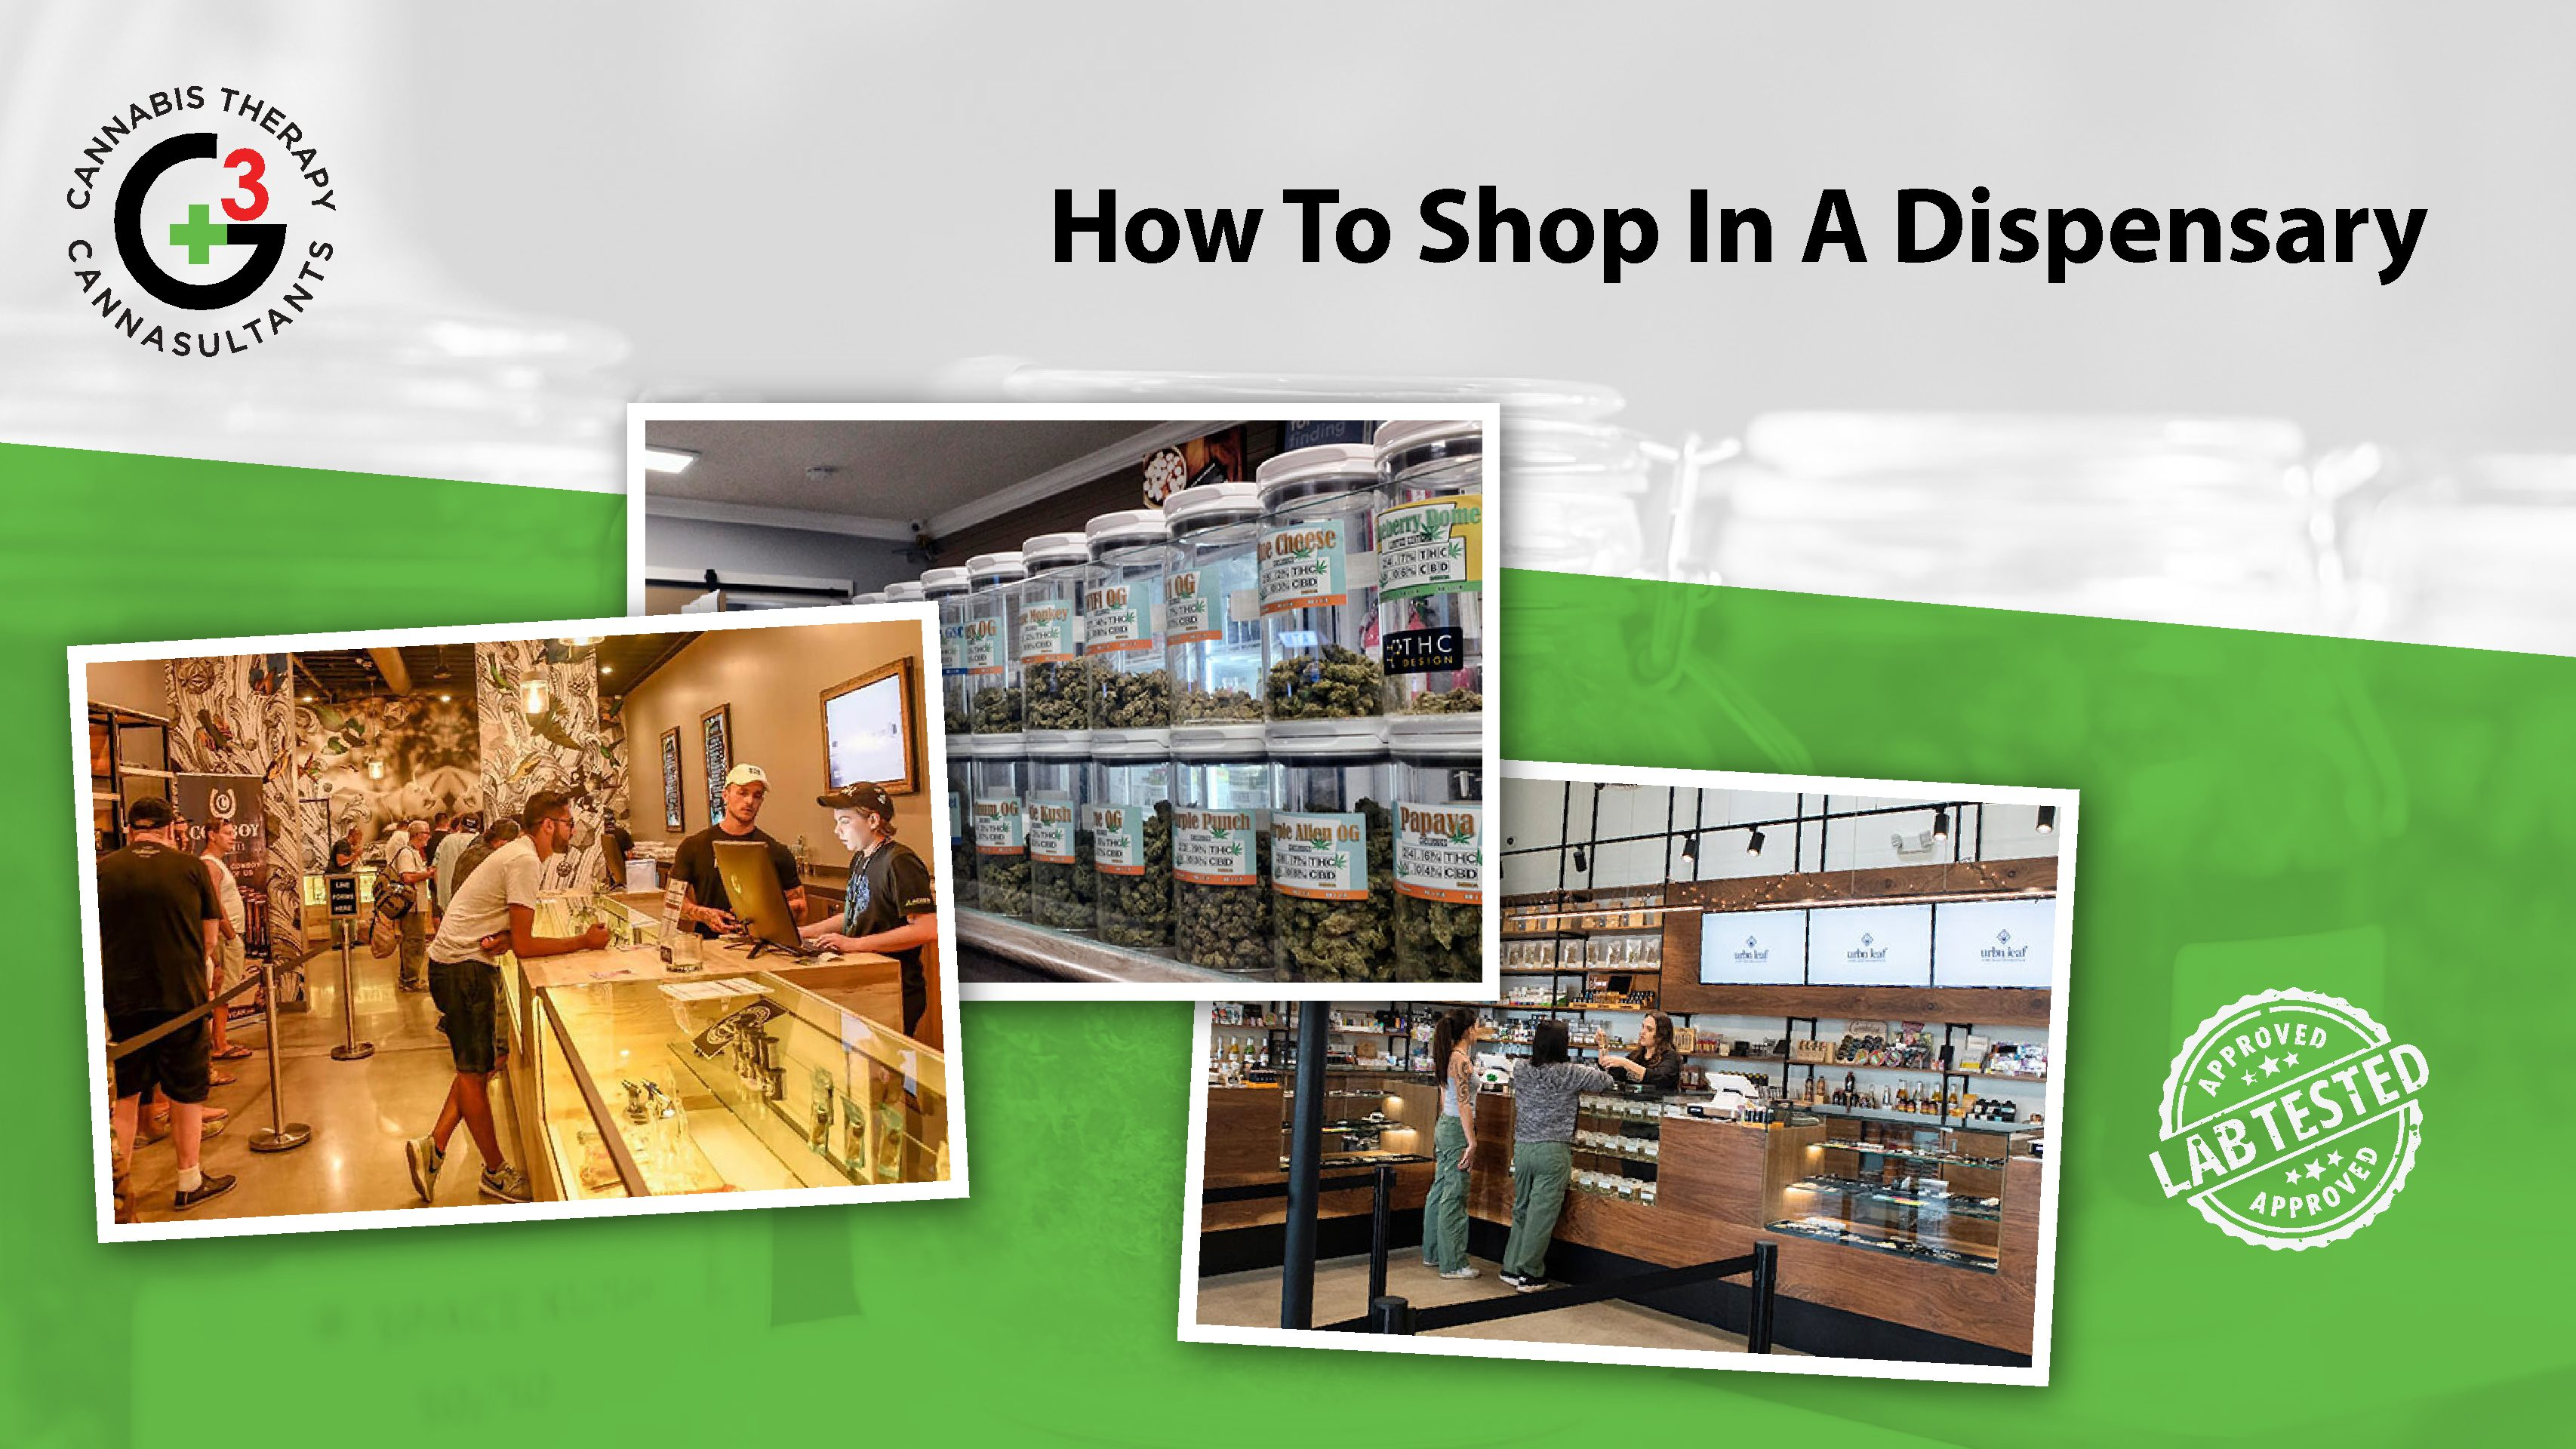 How To Shop In a Dispensary